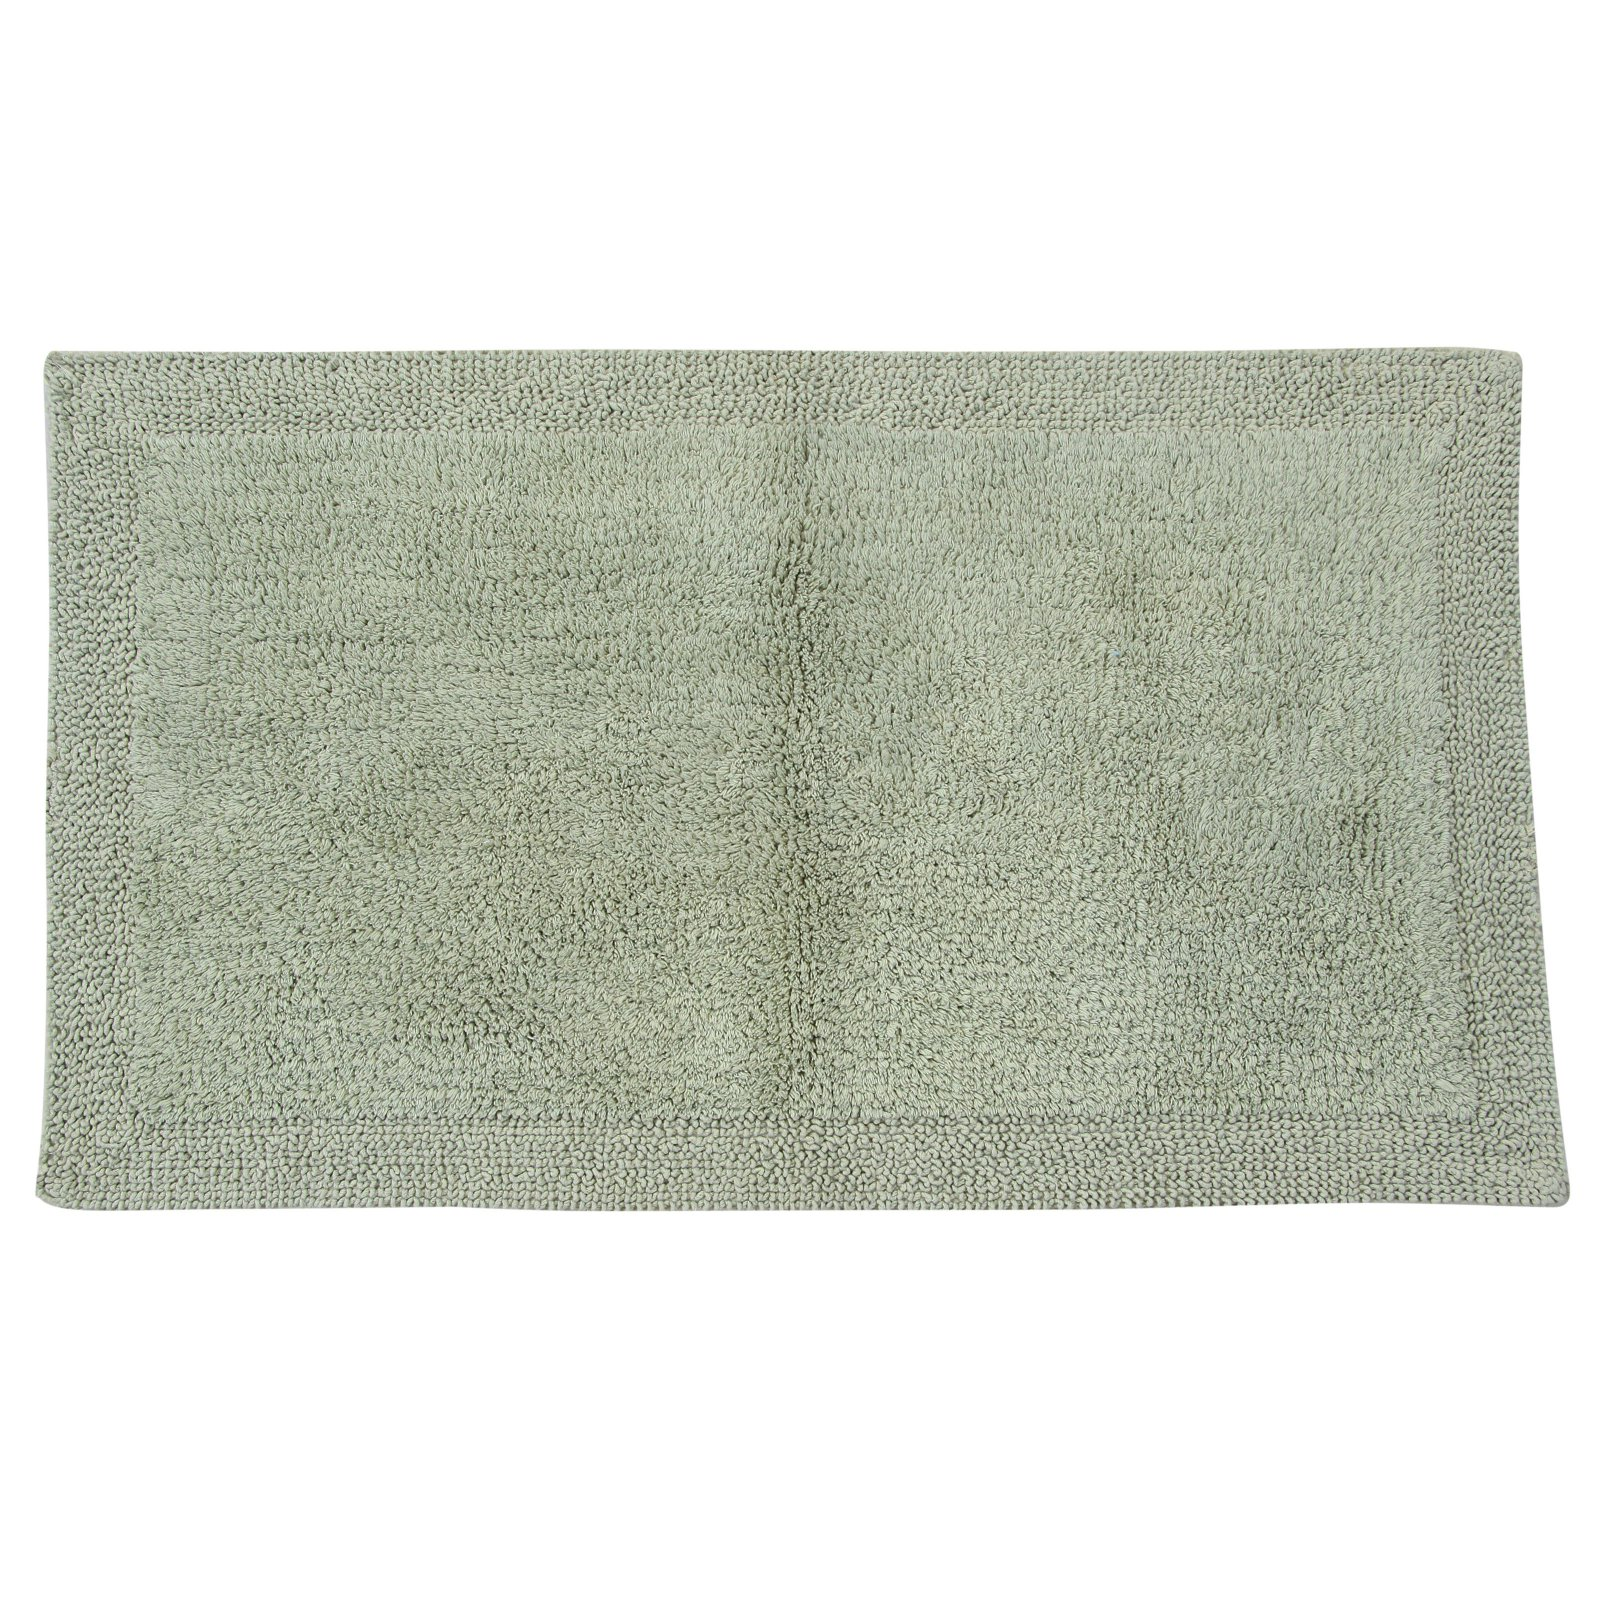 Elegance Collection Bella Napoli Reversible Bath Rug